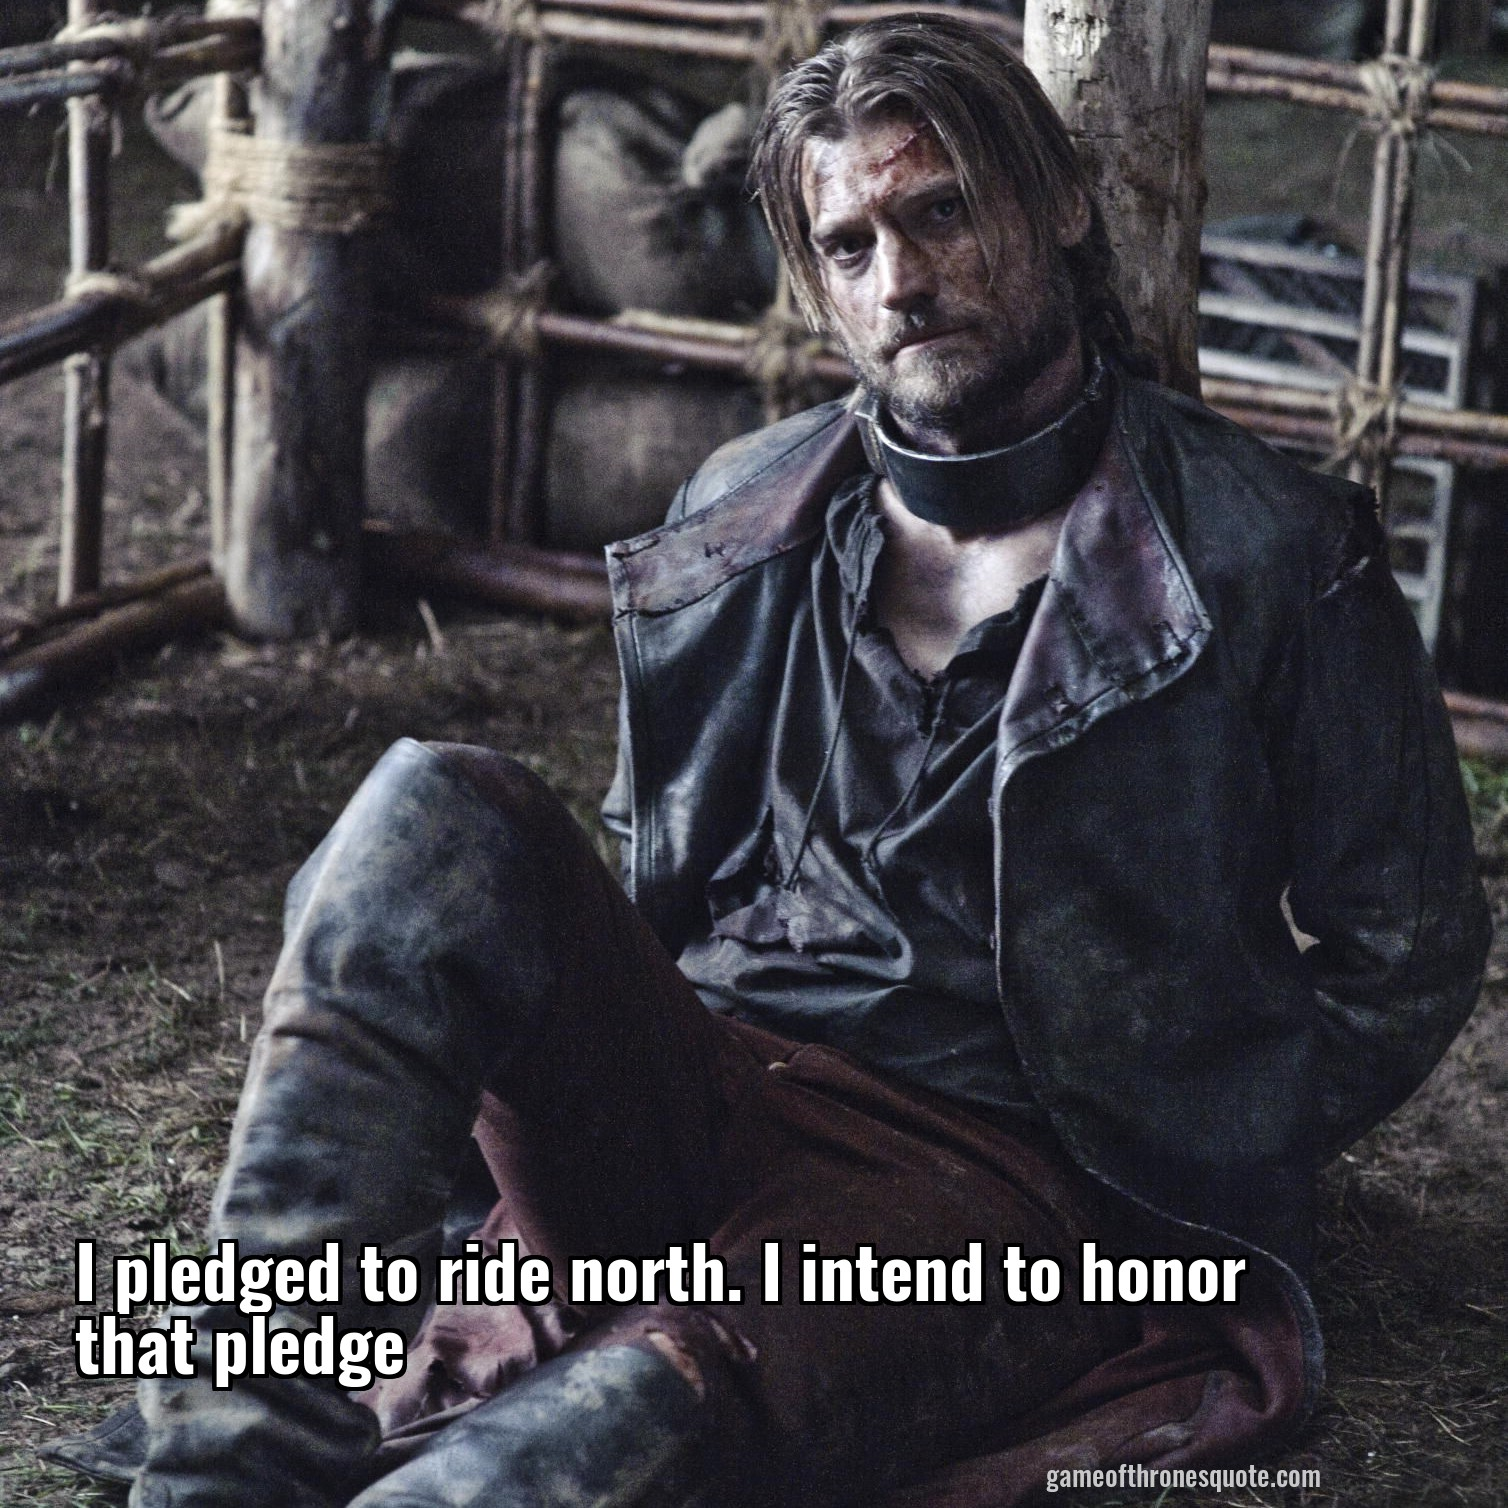 I pledged to ride north. I intend to honor that pledge